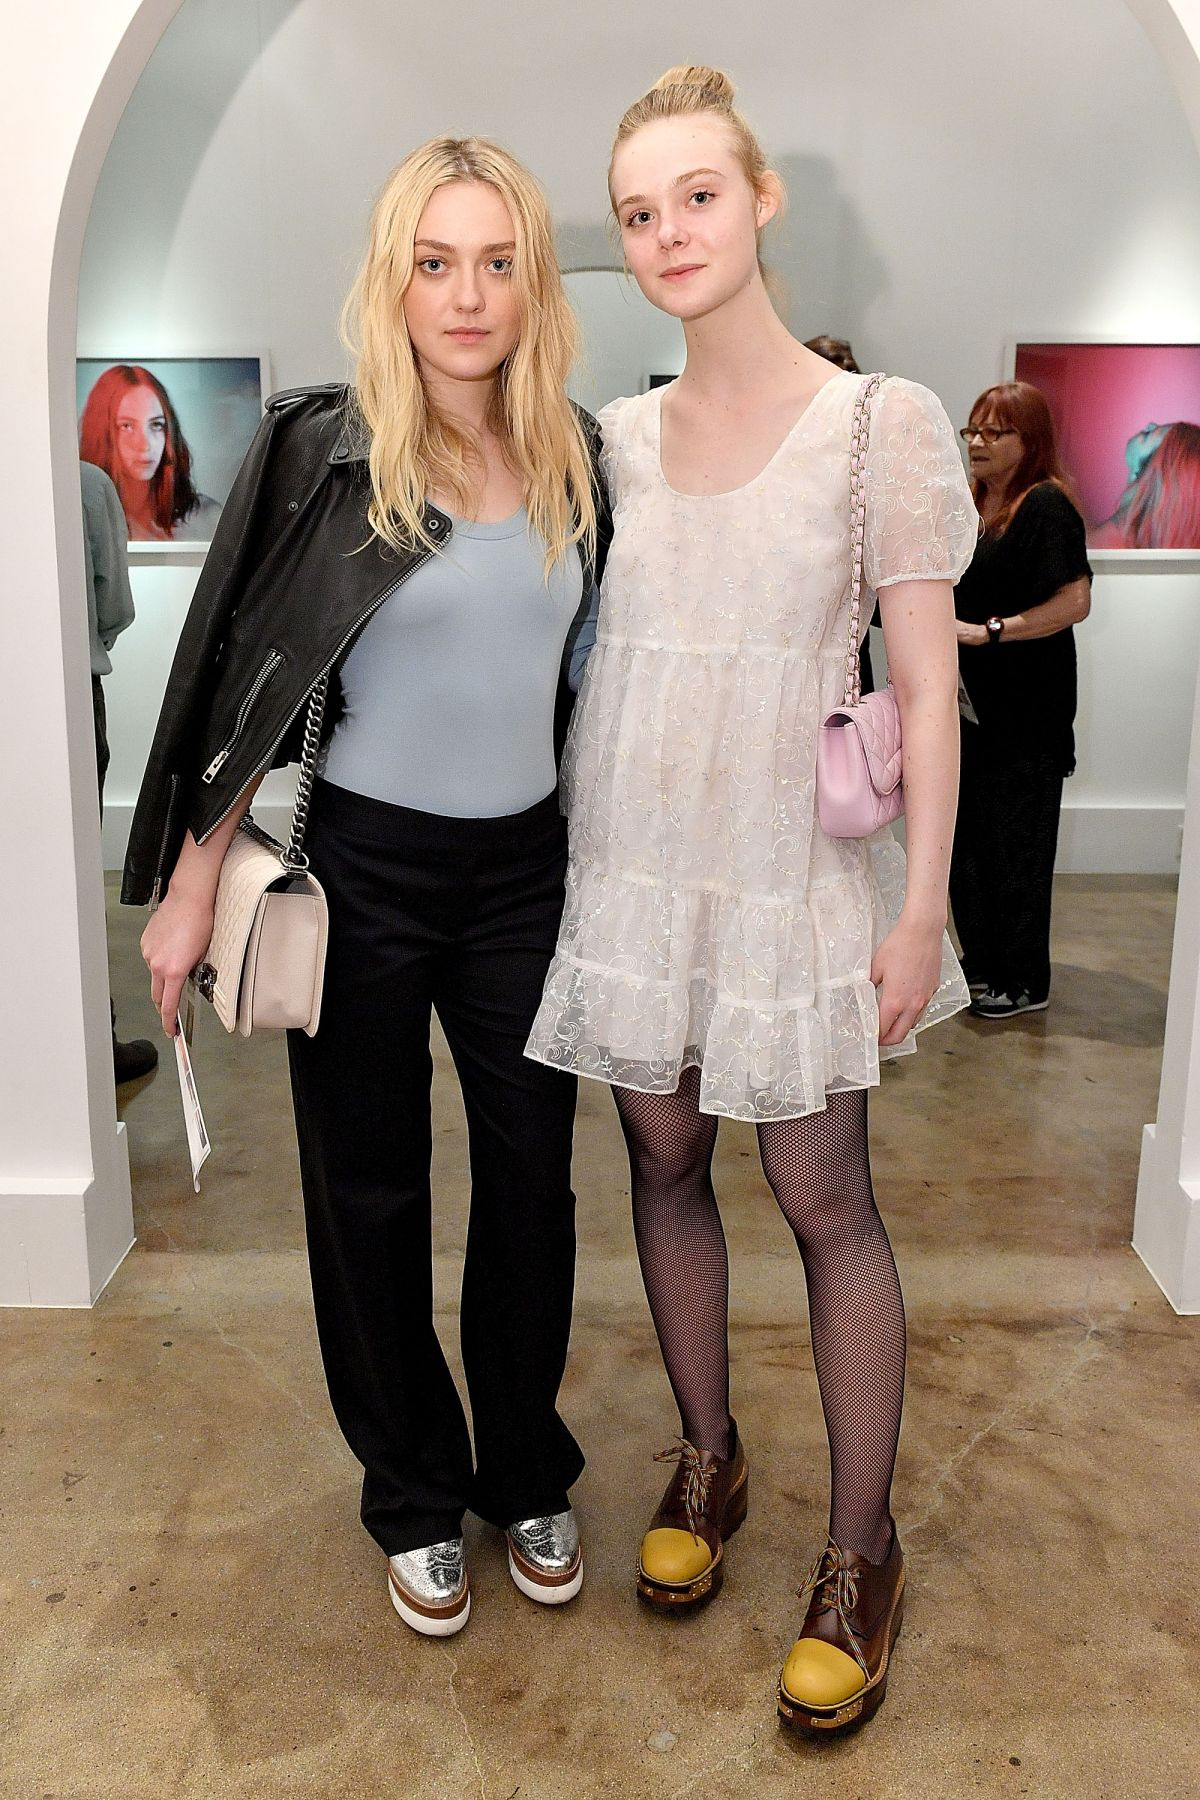 DAKOTA and ELLE FANNING at Anton Yelchin Photography Exhibit Opening in Los Angeles 11/05/2016